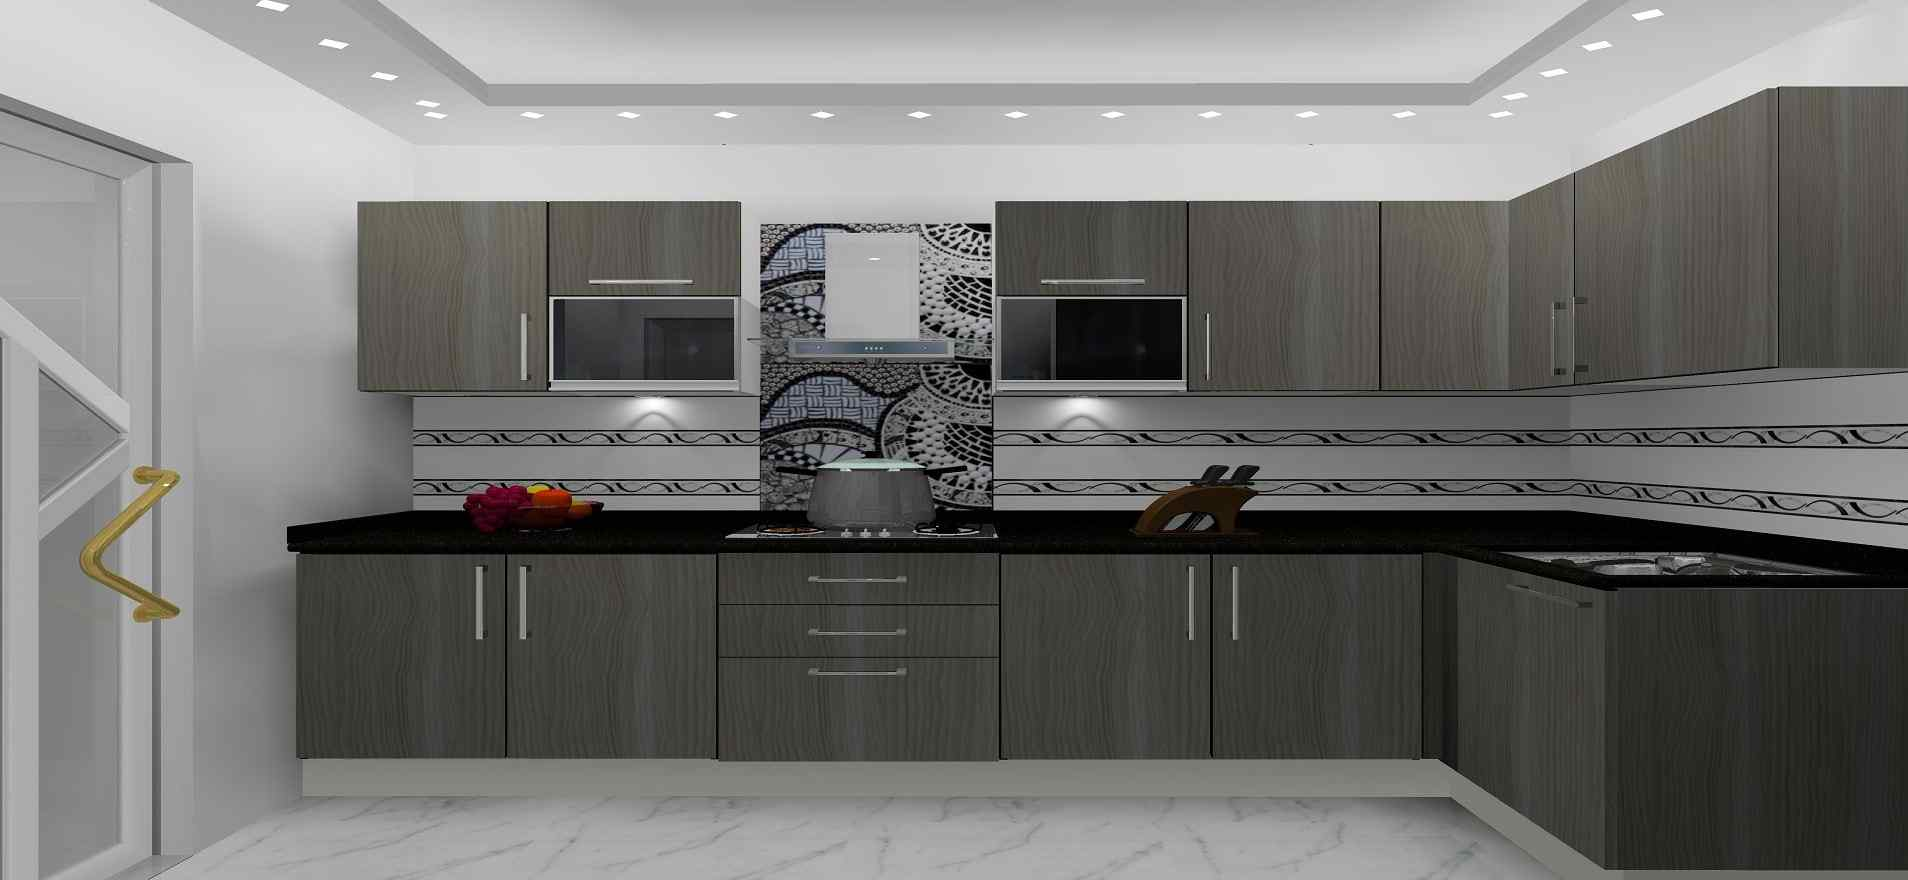 Modular Kitchen Manufacturers In Noida Modular Kitchen Design